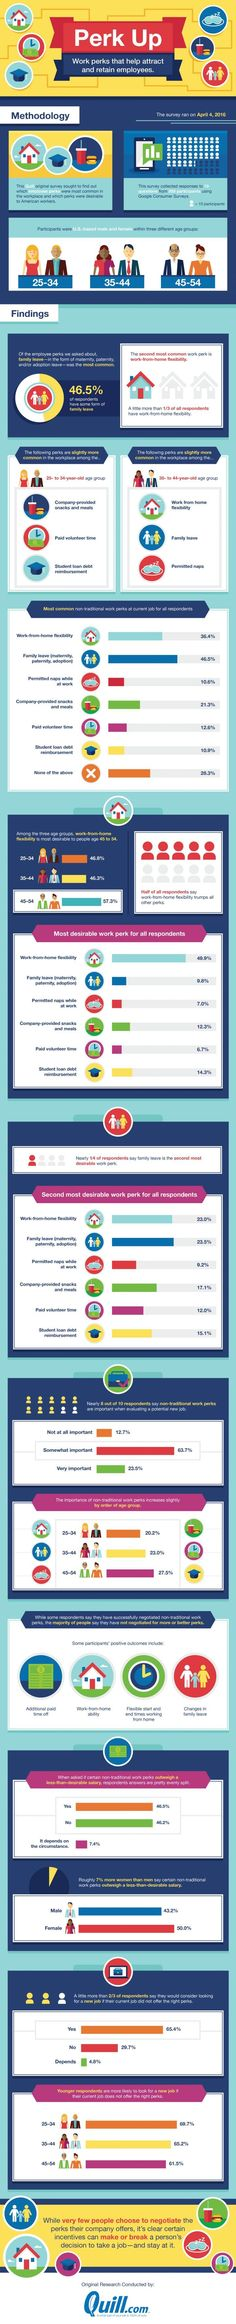 Work Perks that Help Attract and Retain Employees #Infographic #Business itz-my.com http://ibeebz.com